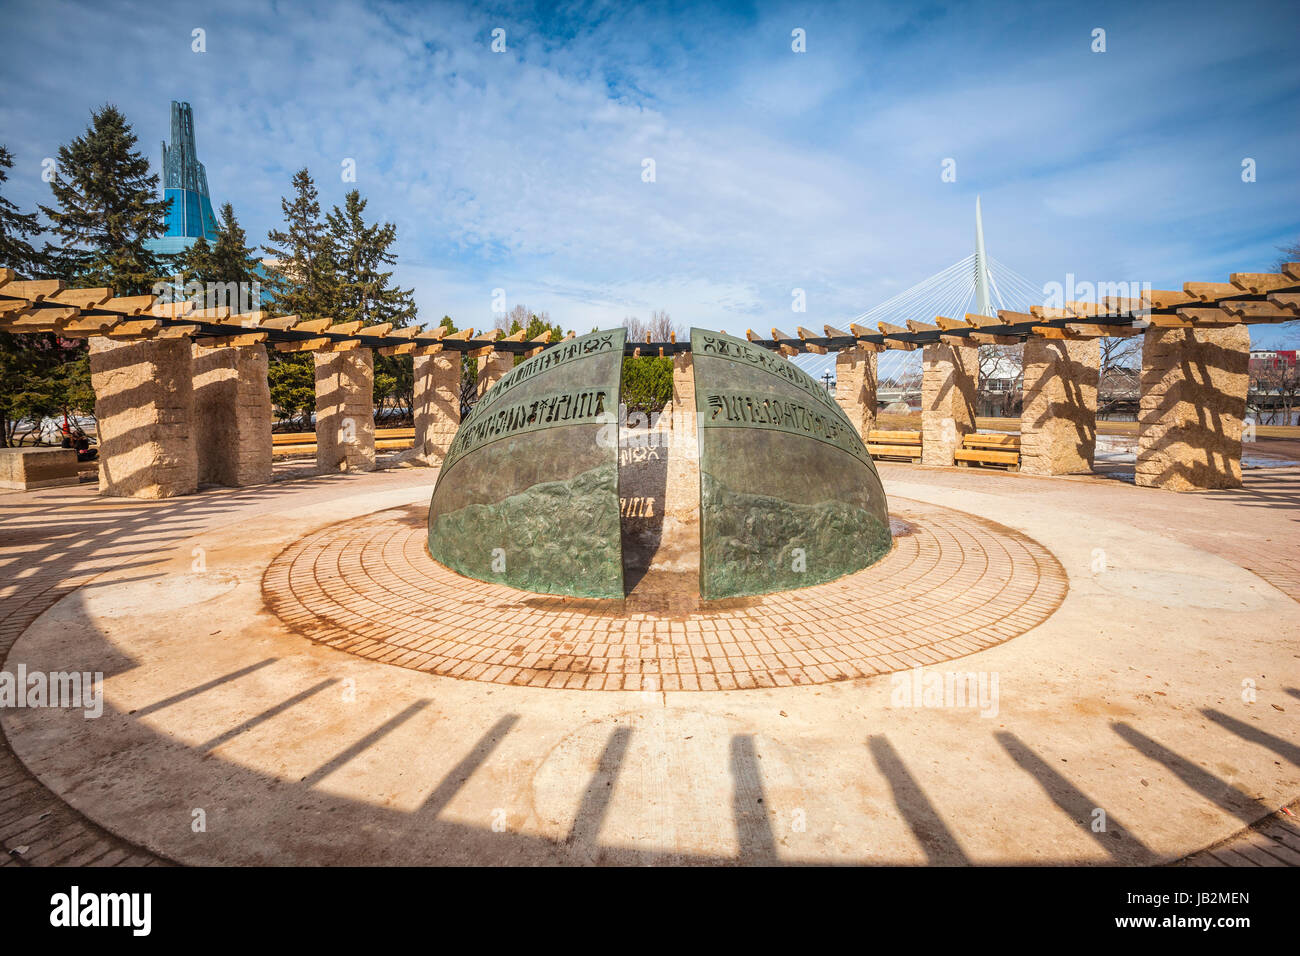 The Path of Time Sculpture, Orientation Circle, The Forks National Historic Site in Winnipeg, Manitoba, Canada. - Stock Image